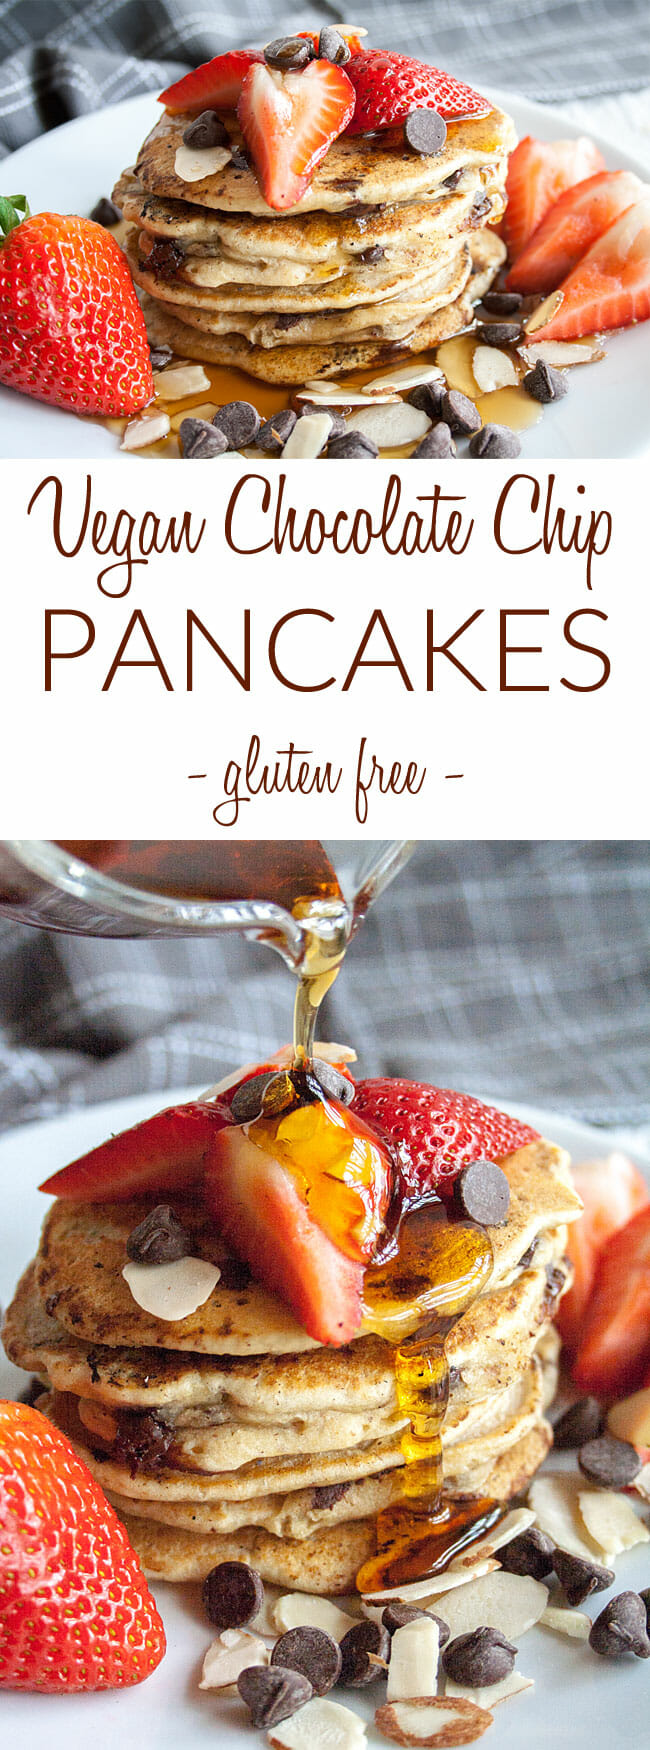 Fluffy Vegan Pancakes collage photo with text.